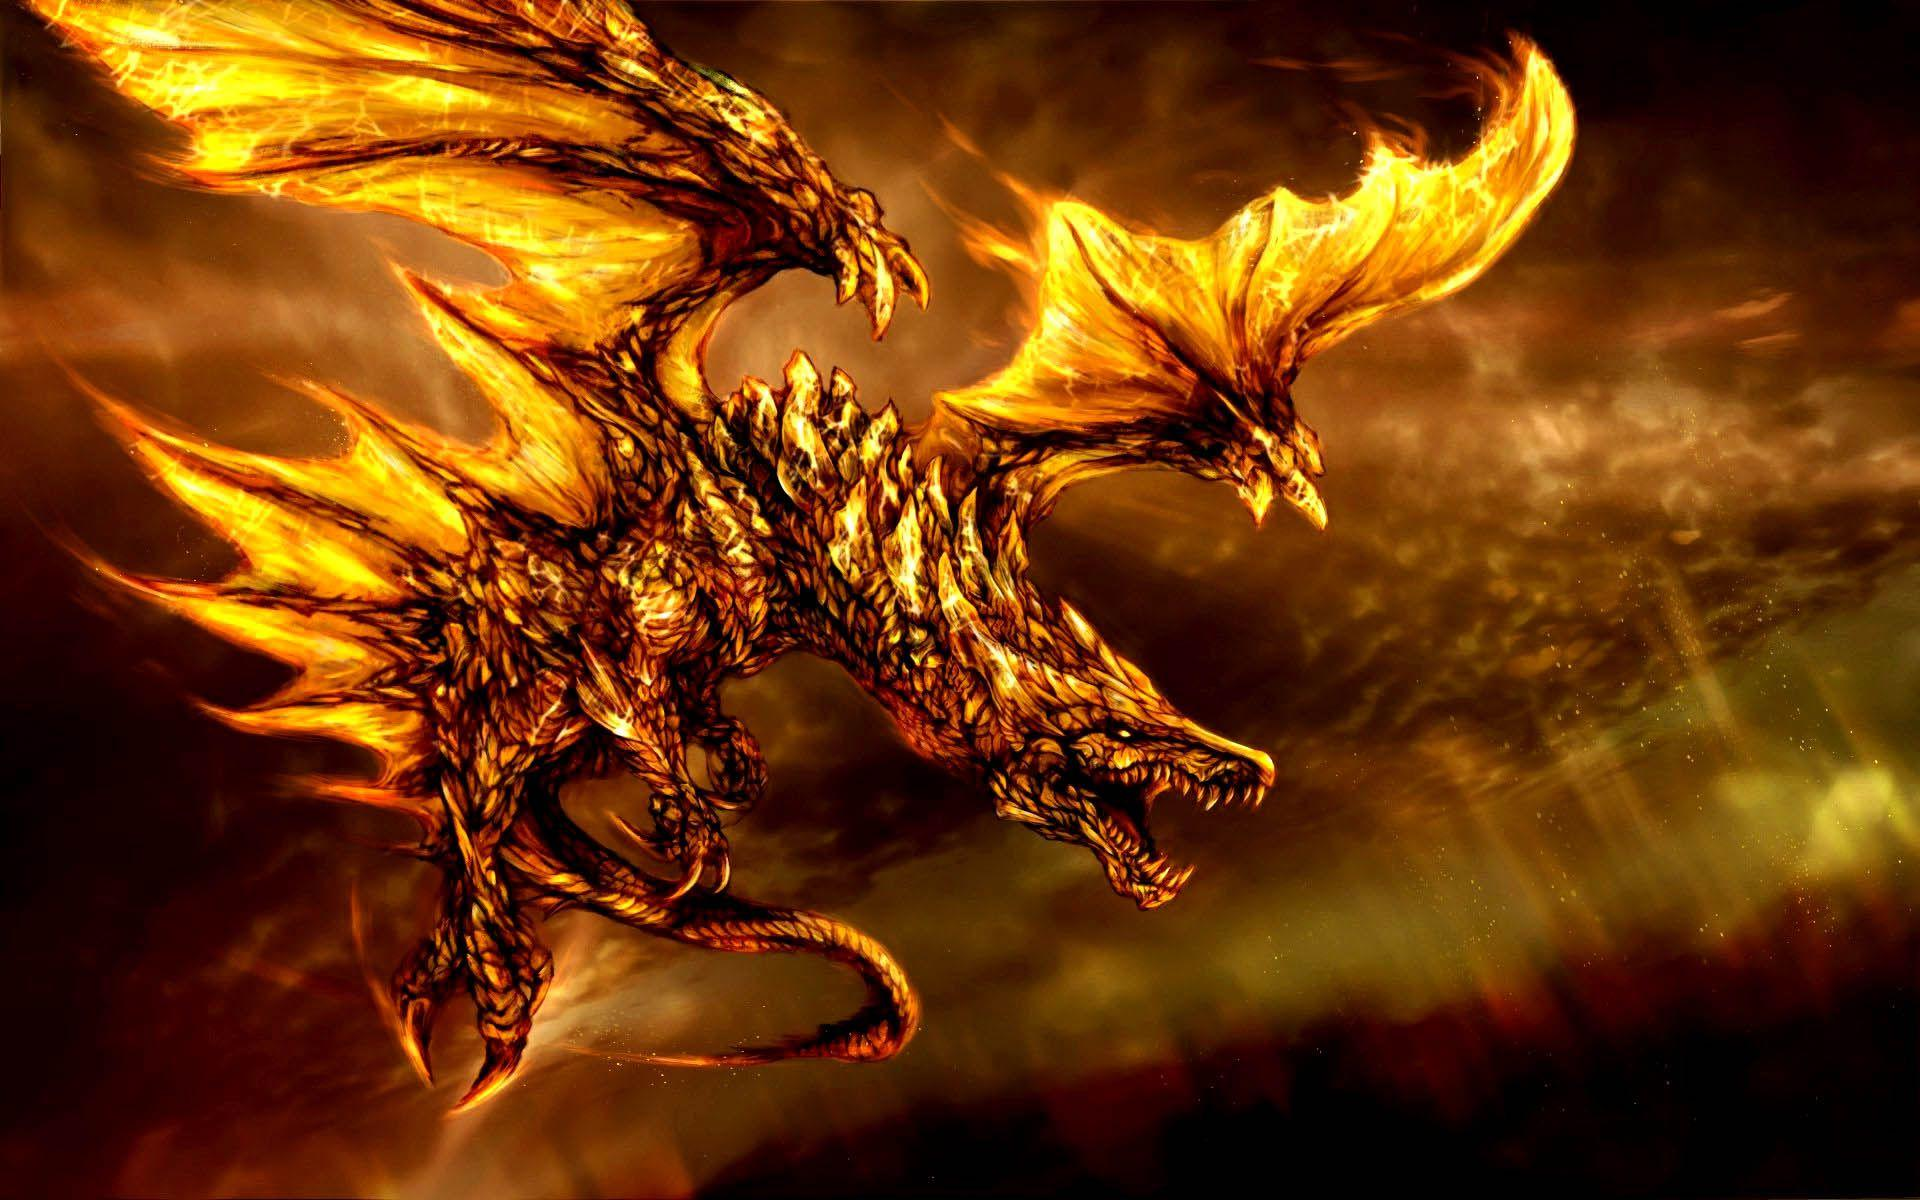 Fire Dragon Wallpapers 3d